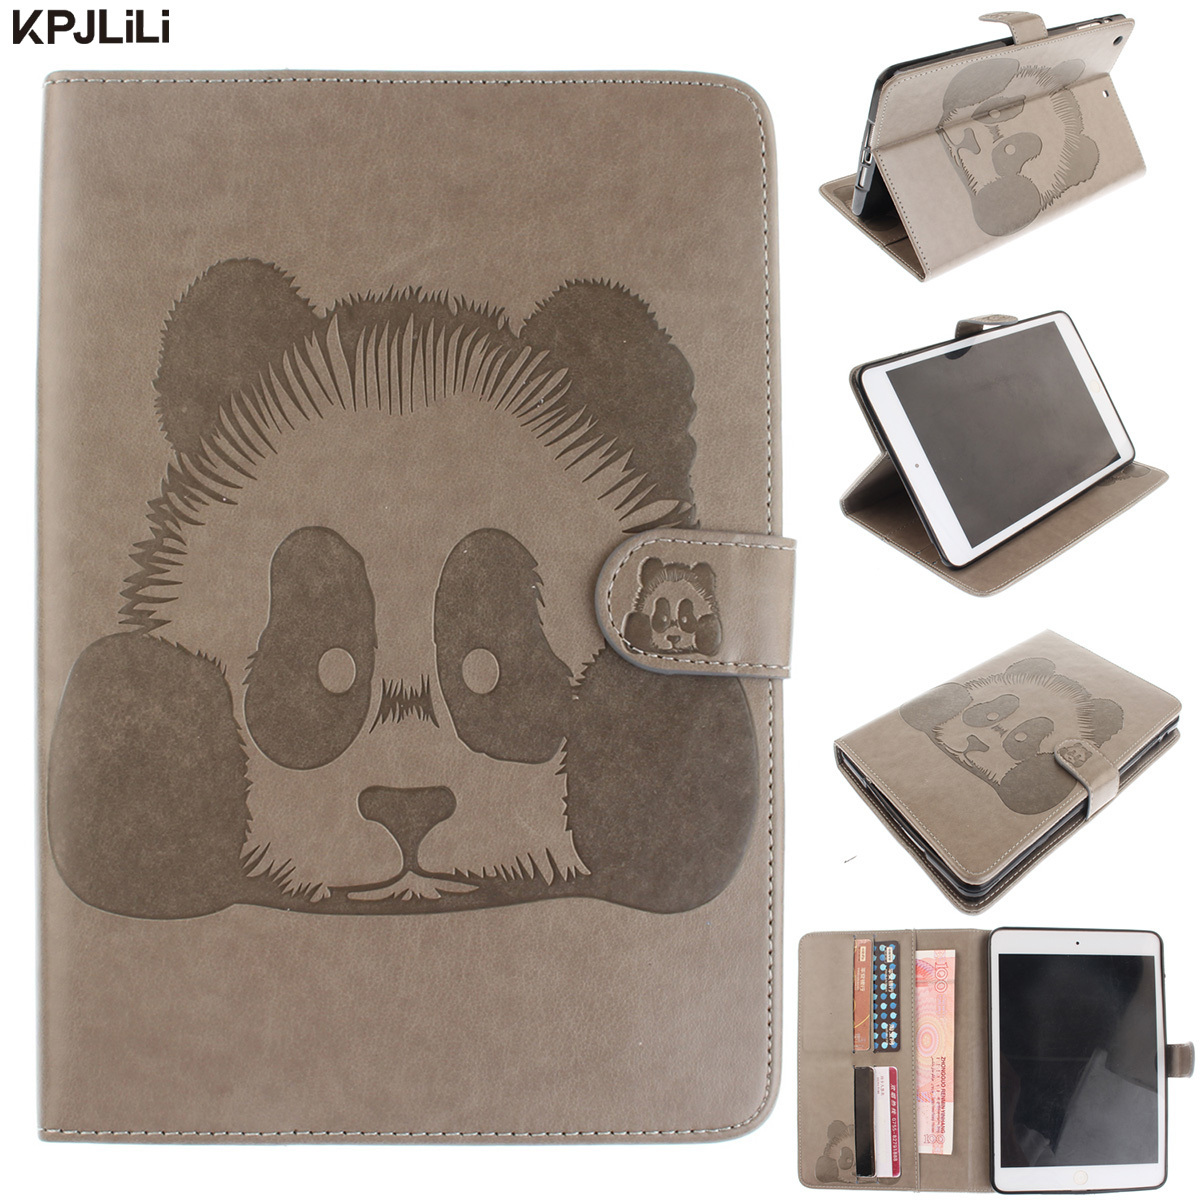 Luxury PU Leather Cover Case for Apple iPad Air 1 Cute Cartoon Wallet Card Slot Flip Stand Funda Smart Magnetic Cover for Air 1 степлер для скоб и гвоздей stayer master 31508 z02